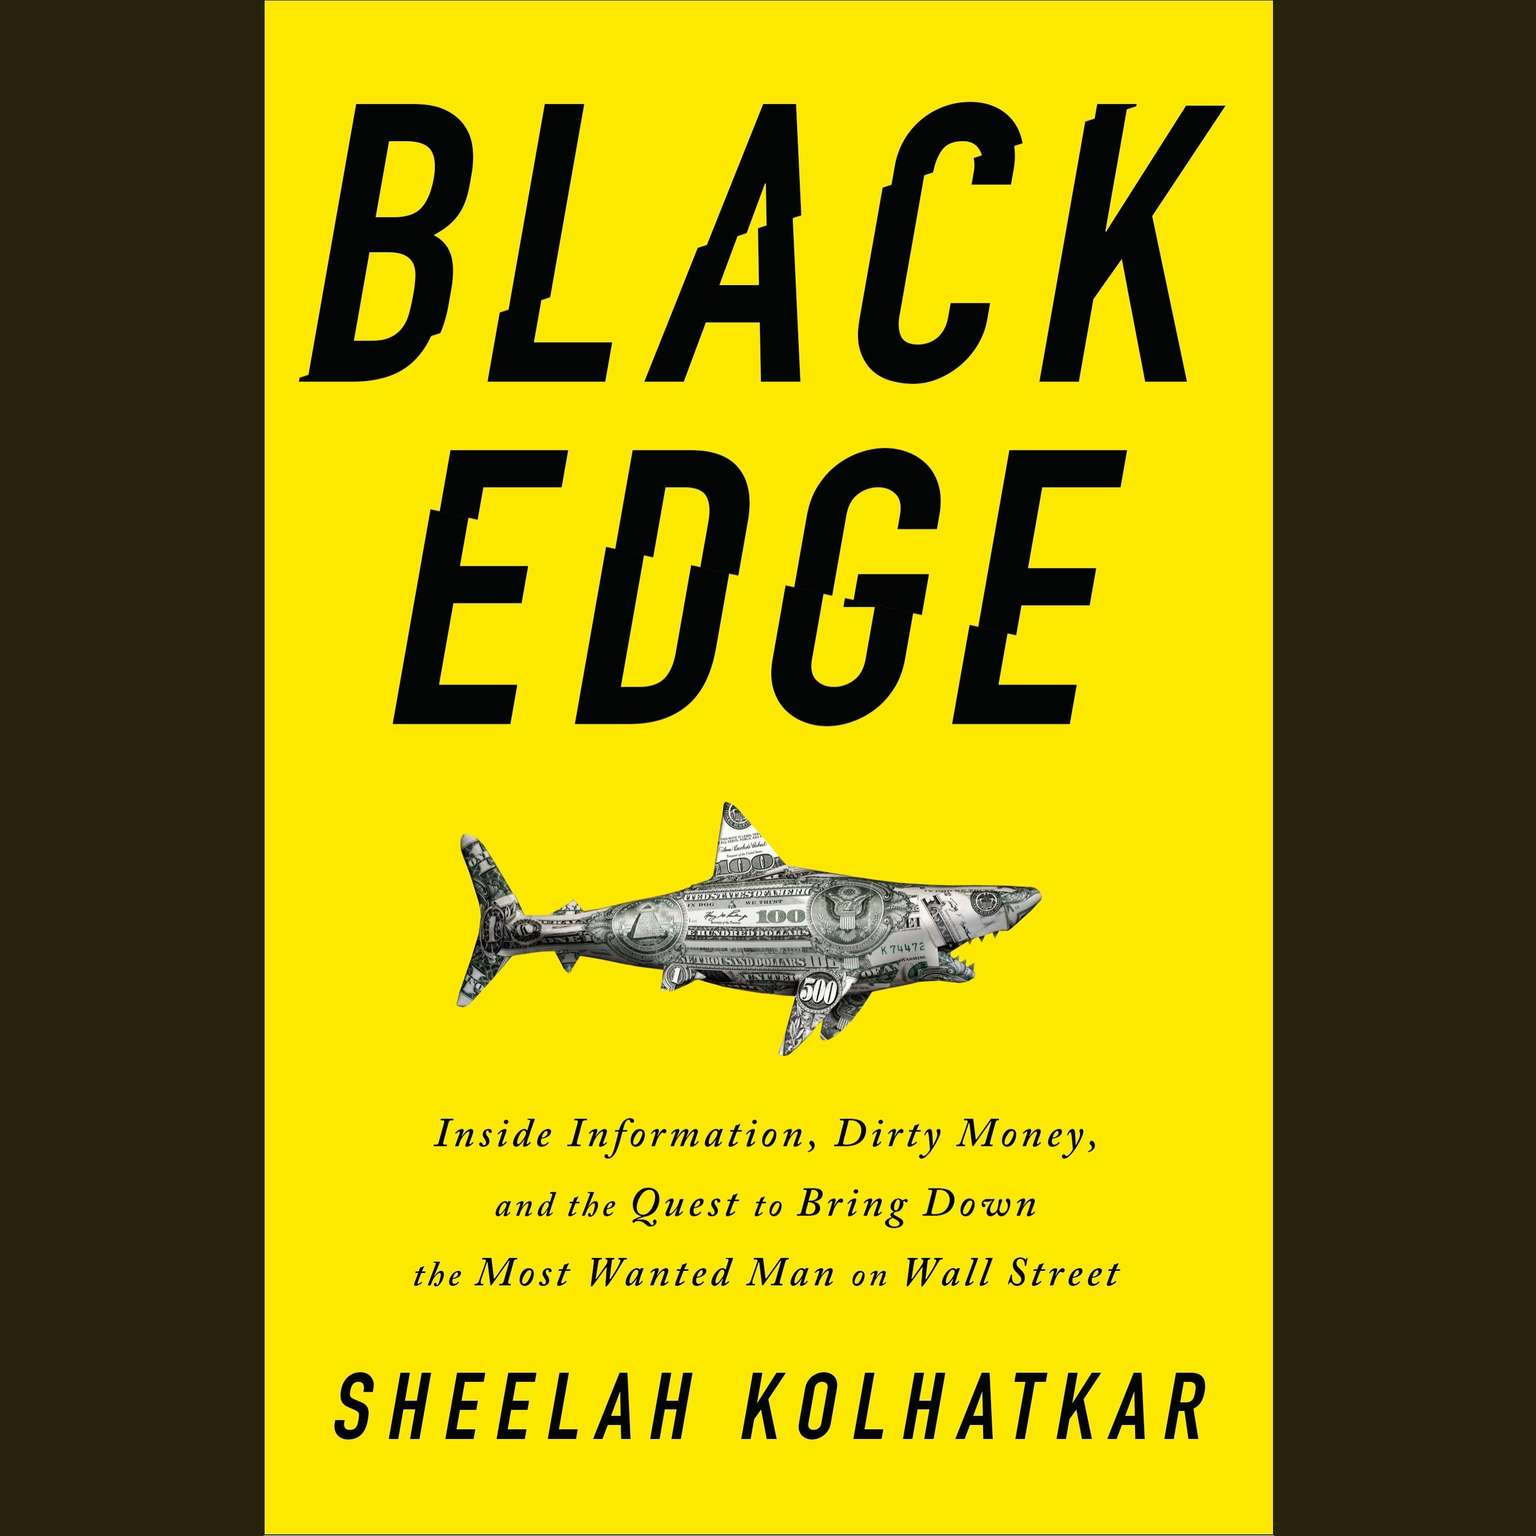 Printable Black Edge: Inside Information, Dirty Money, and the Quest to Bring Down the Most Wanted Man on Wall Street Audiobook Cover Art